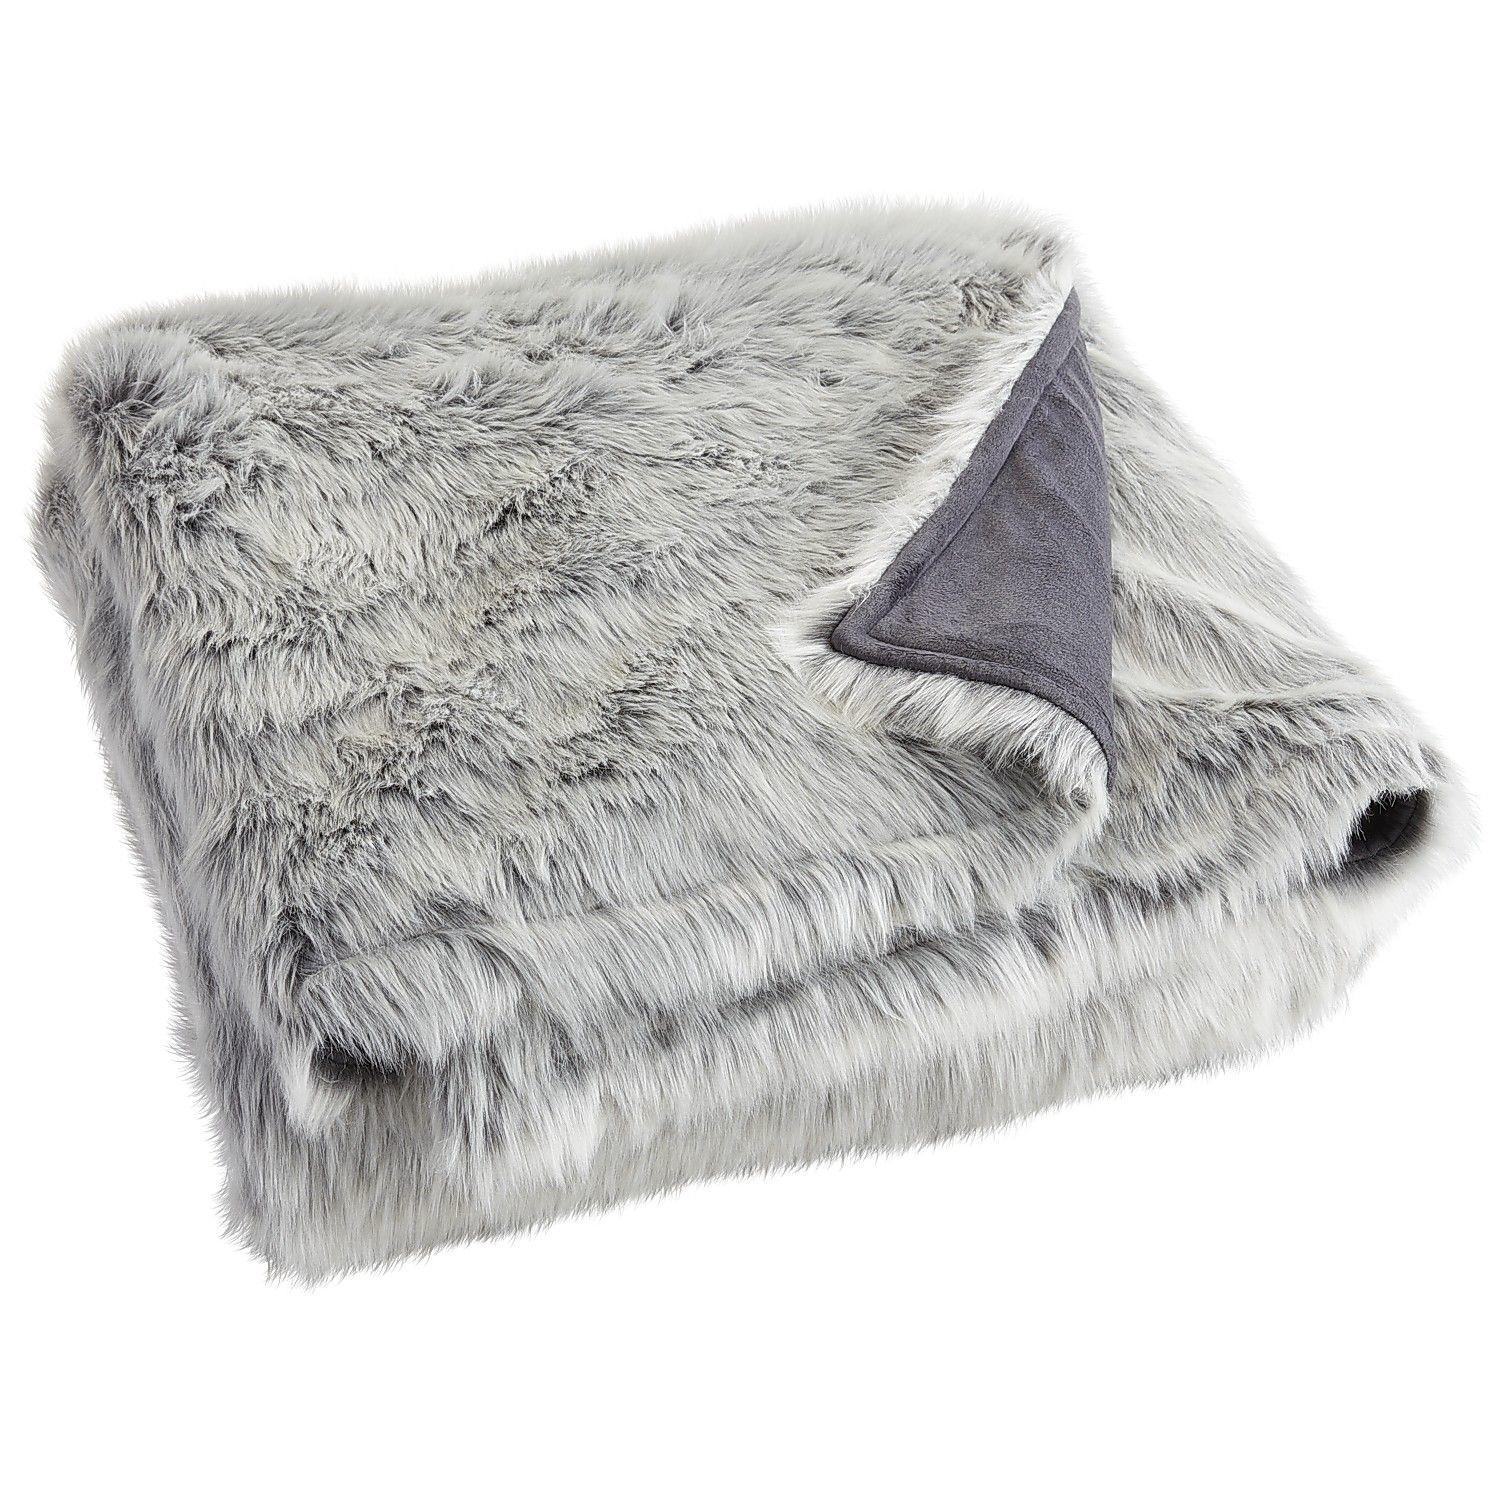 Home Decor Stores In Nyc Gray Ombre Faux Fur Blanket Amp Shams From Pier 1 Imports